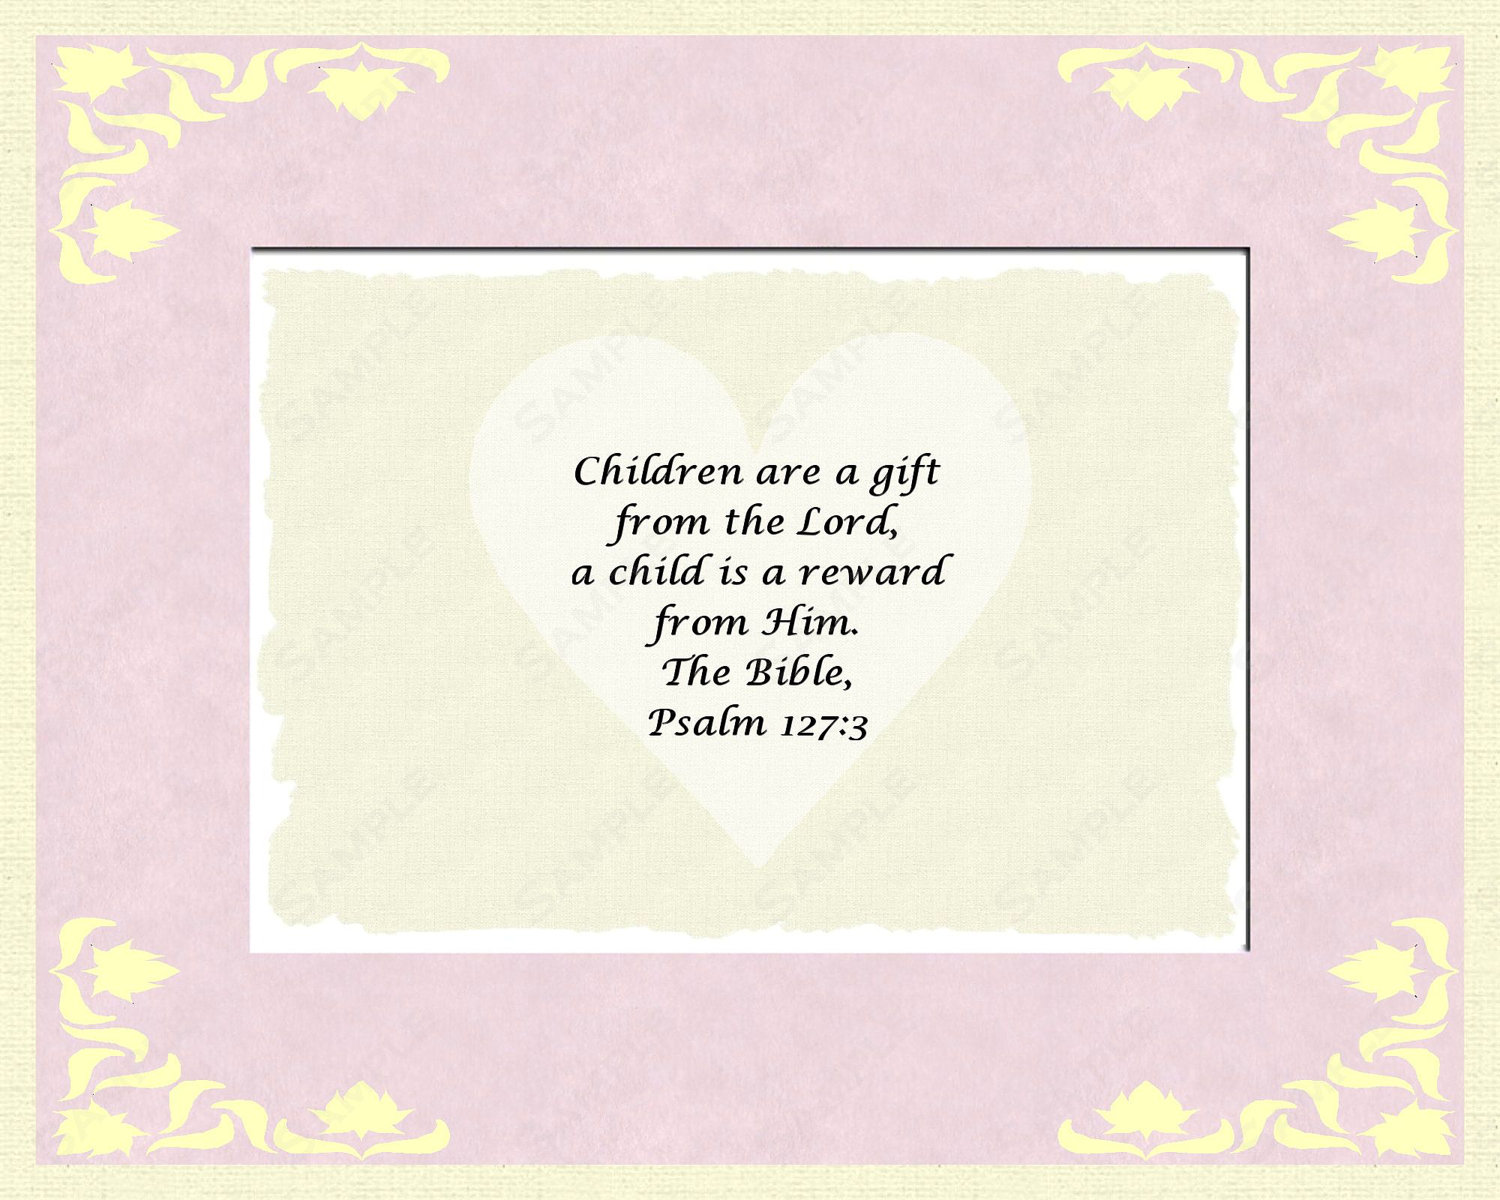 Christening poems thecheapjerseys Choice Image